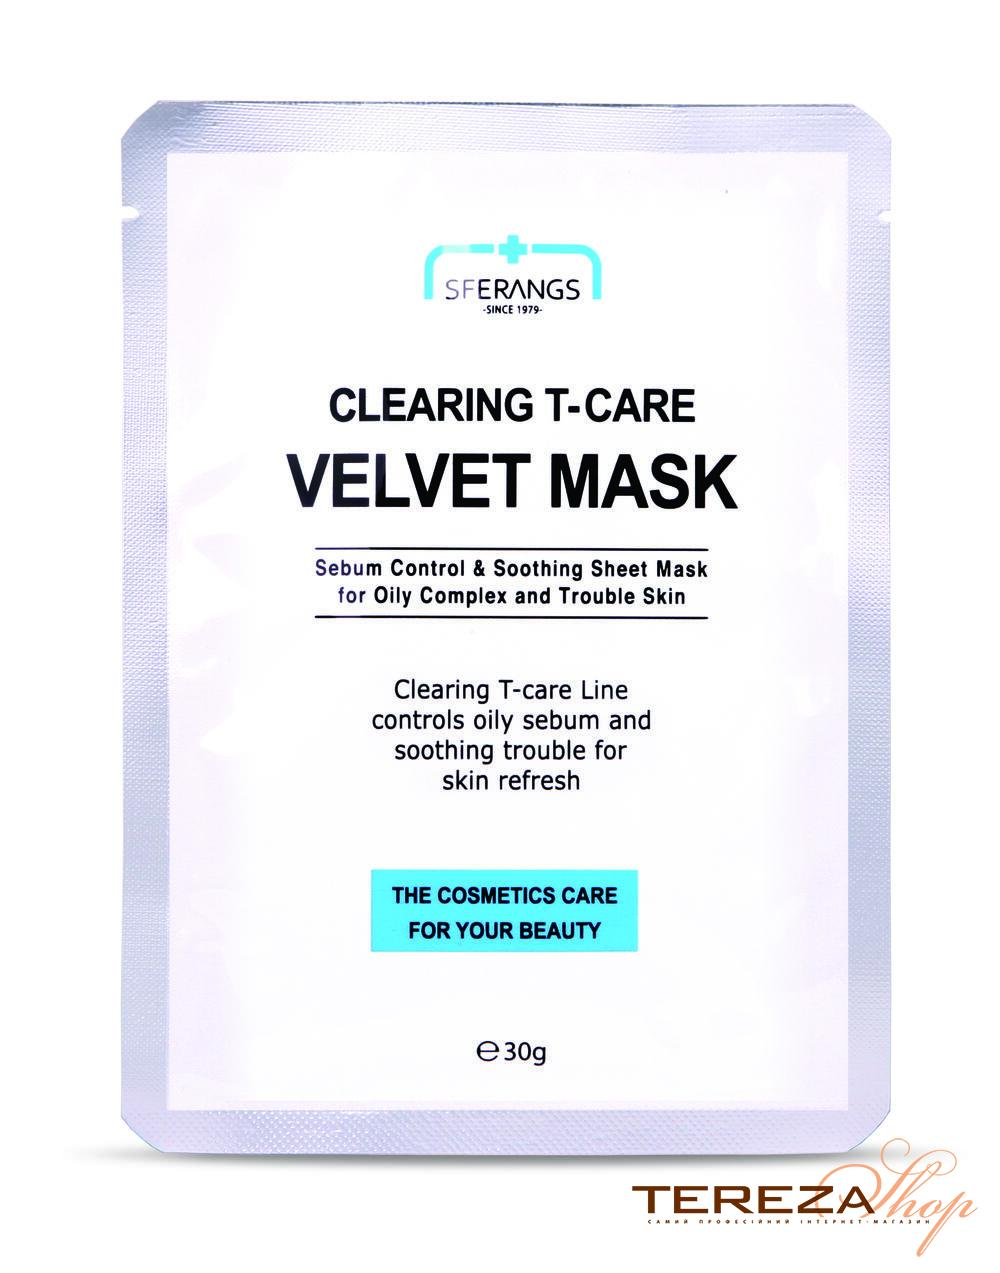 CLEARING T-CARE VELVET MASK SFERANGS | Tereza Shop